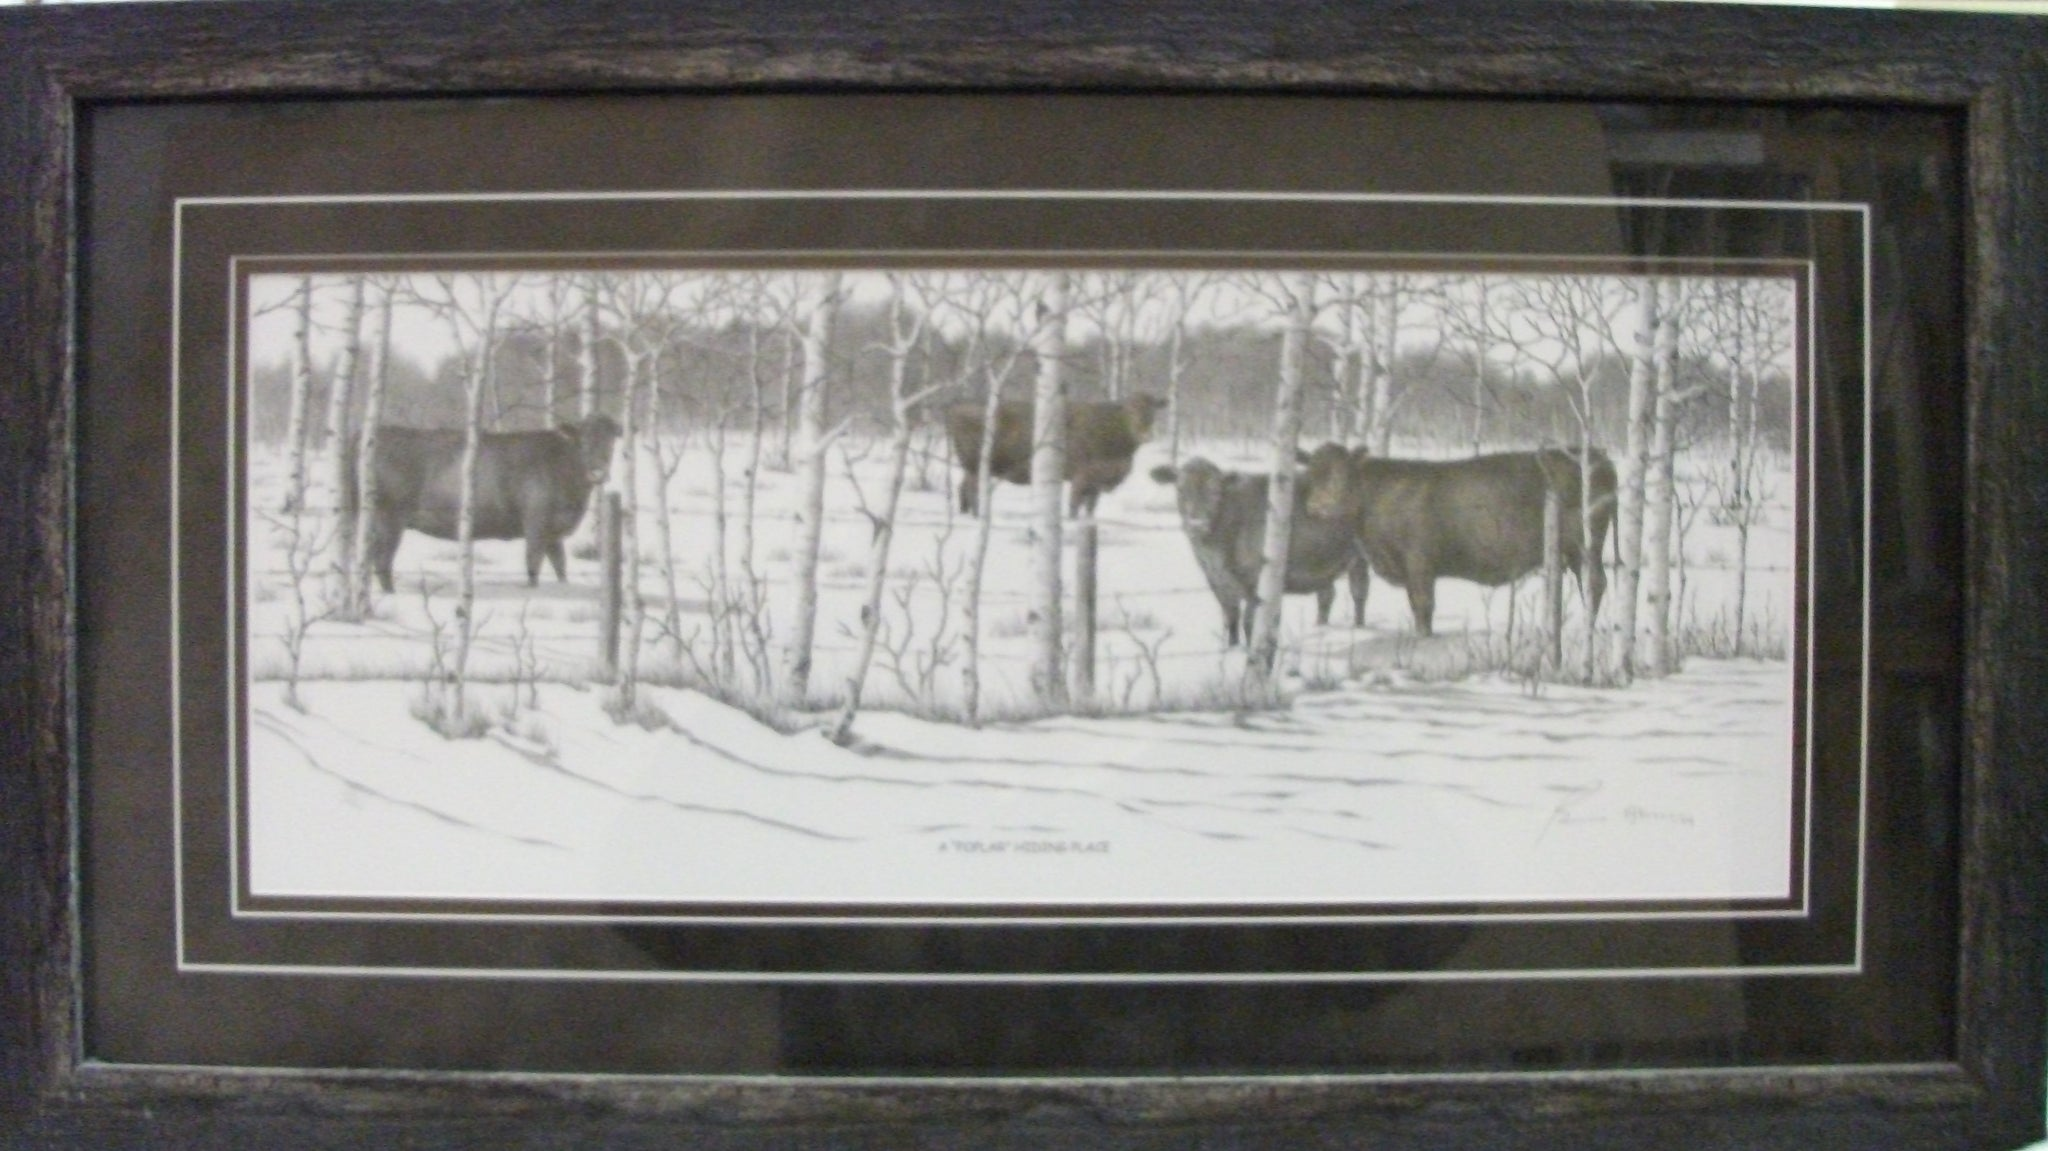 Bernie Brown Ranch and Prairie Pencil Artist